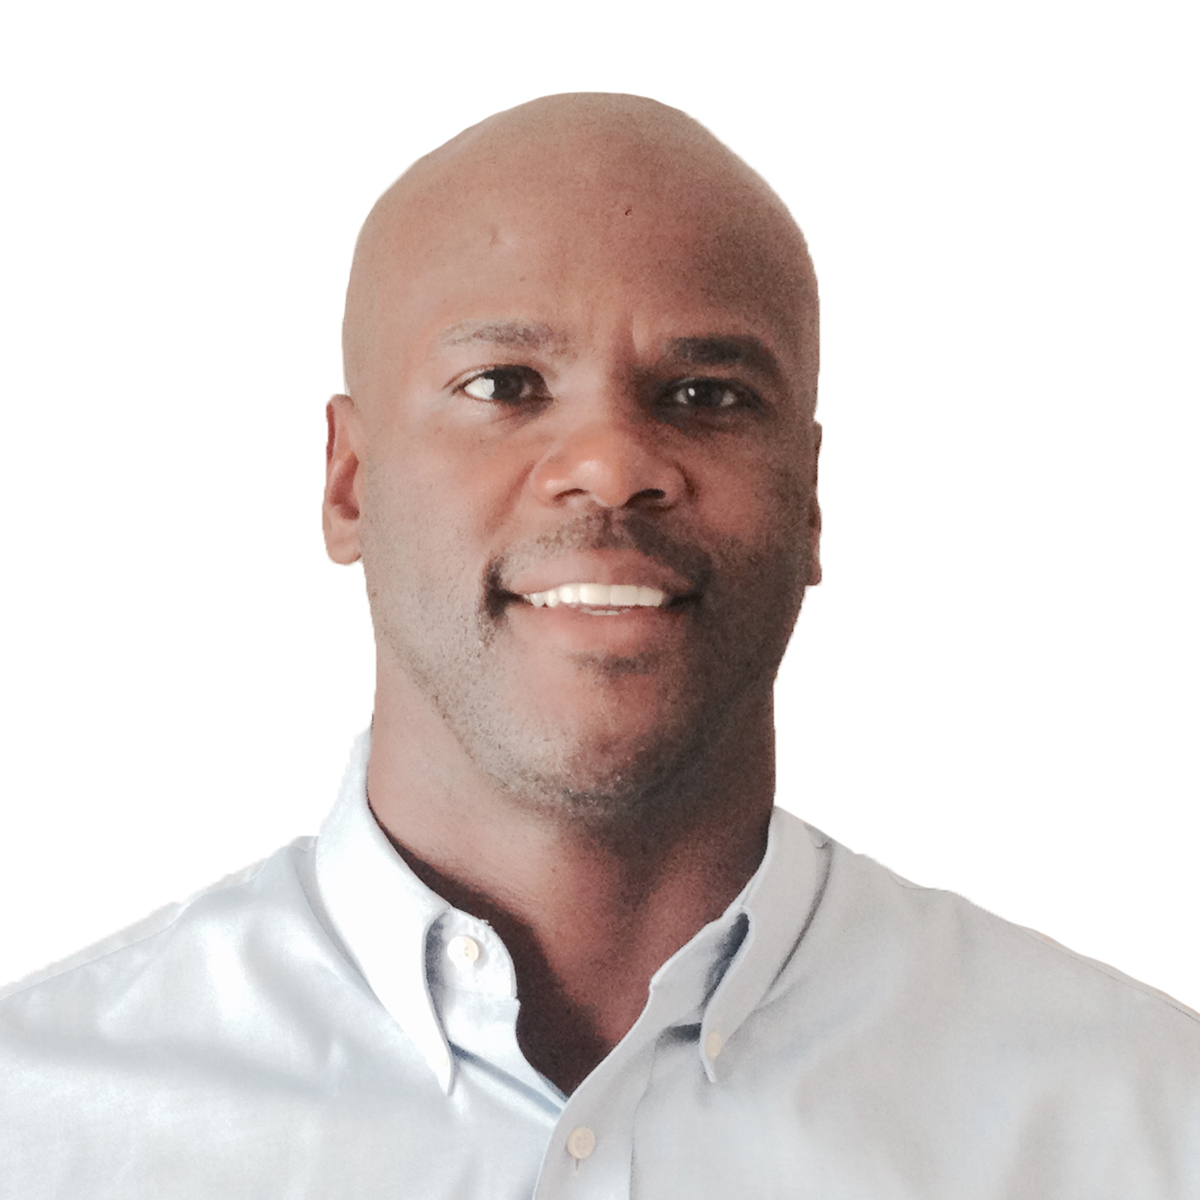 Jasen Holness, Executive Vice President for Commercial and Key Account Strategy, North America at MetrixLab